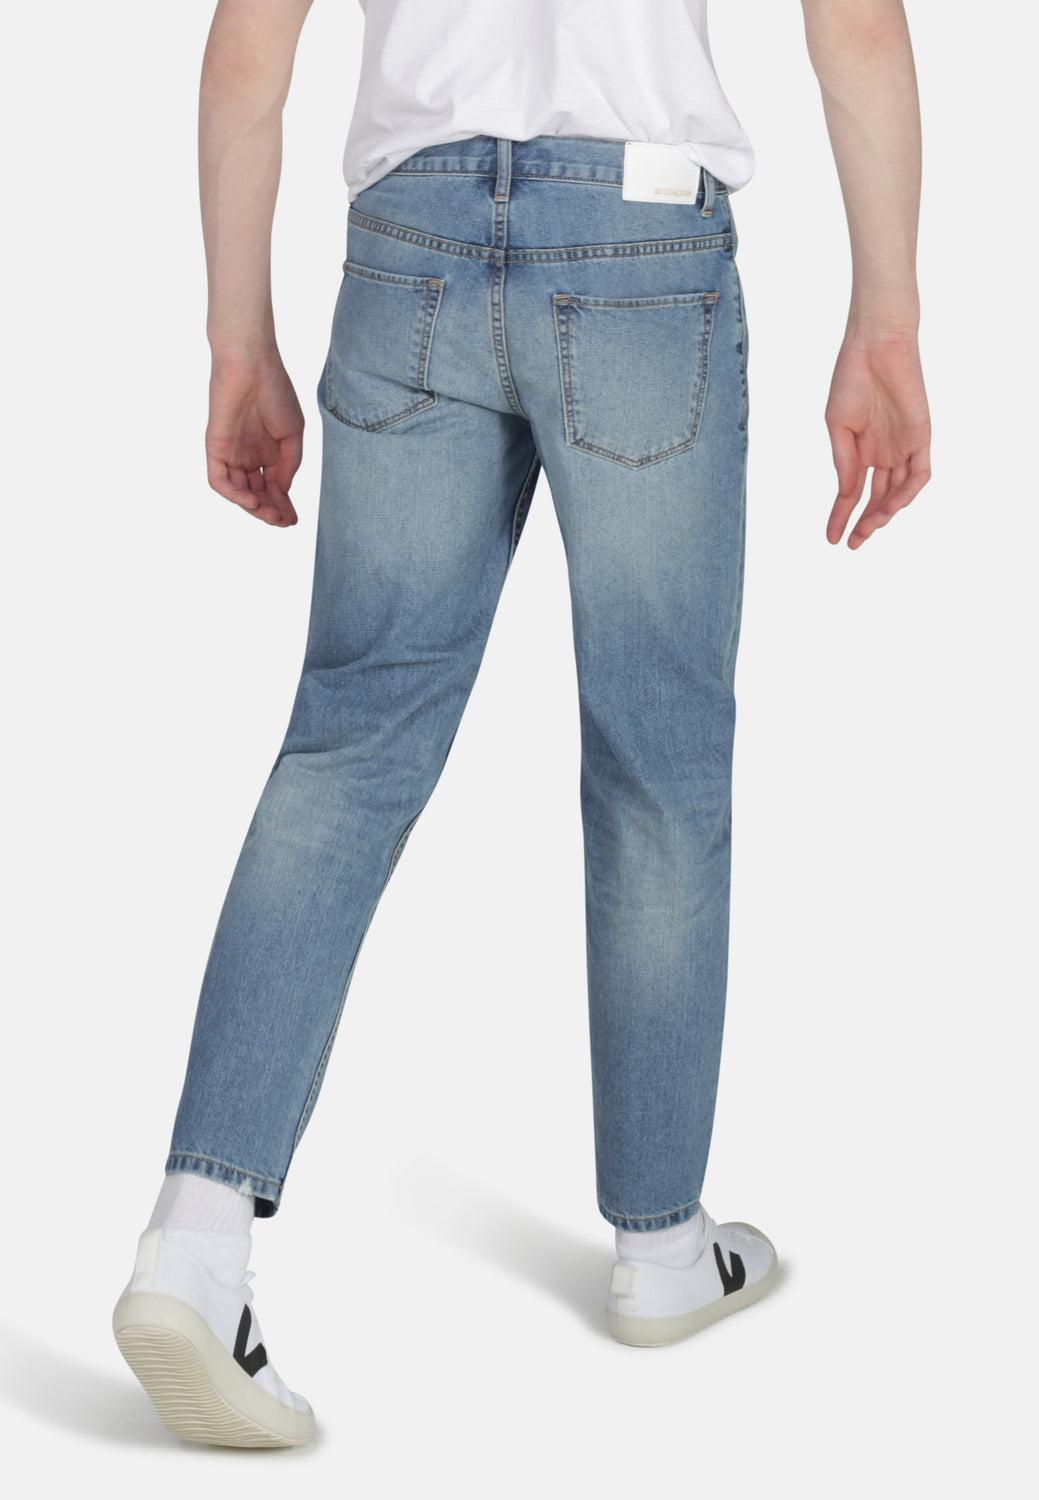 JACK // Organic Tapered Fit Jeans in Light Wash - Monkee Genes Organic Jeans Denim - Men's Tapered Monkee Genes Official  Monkee Genes Official